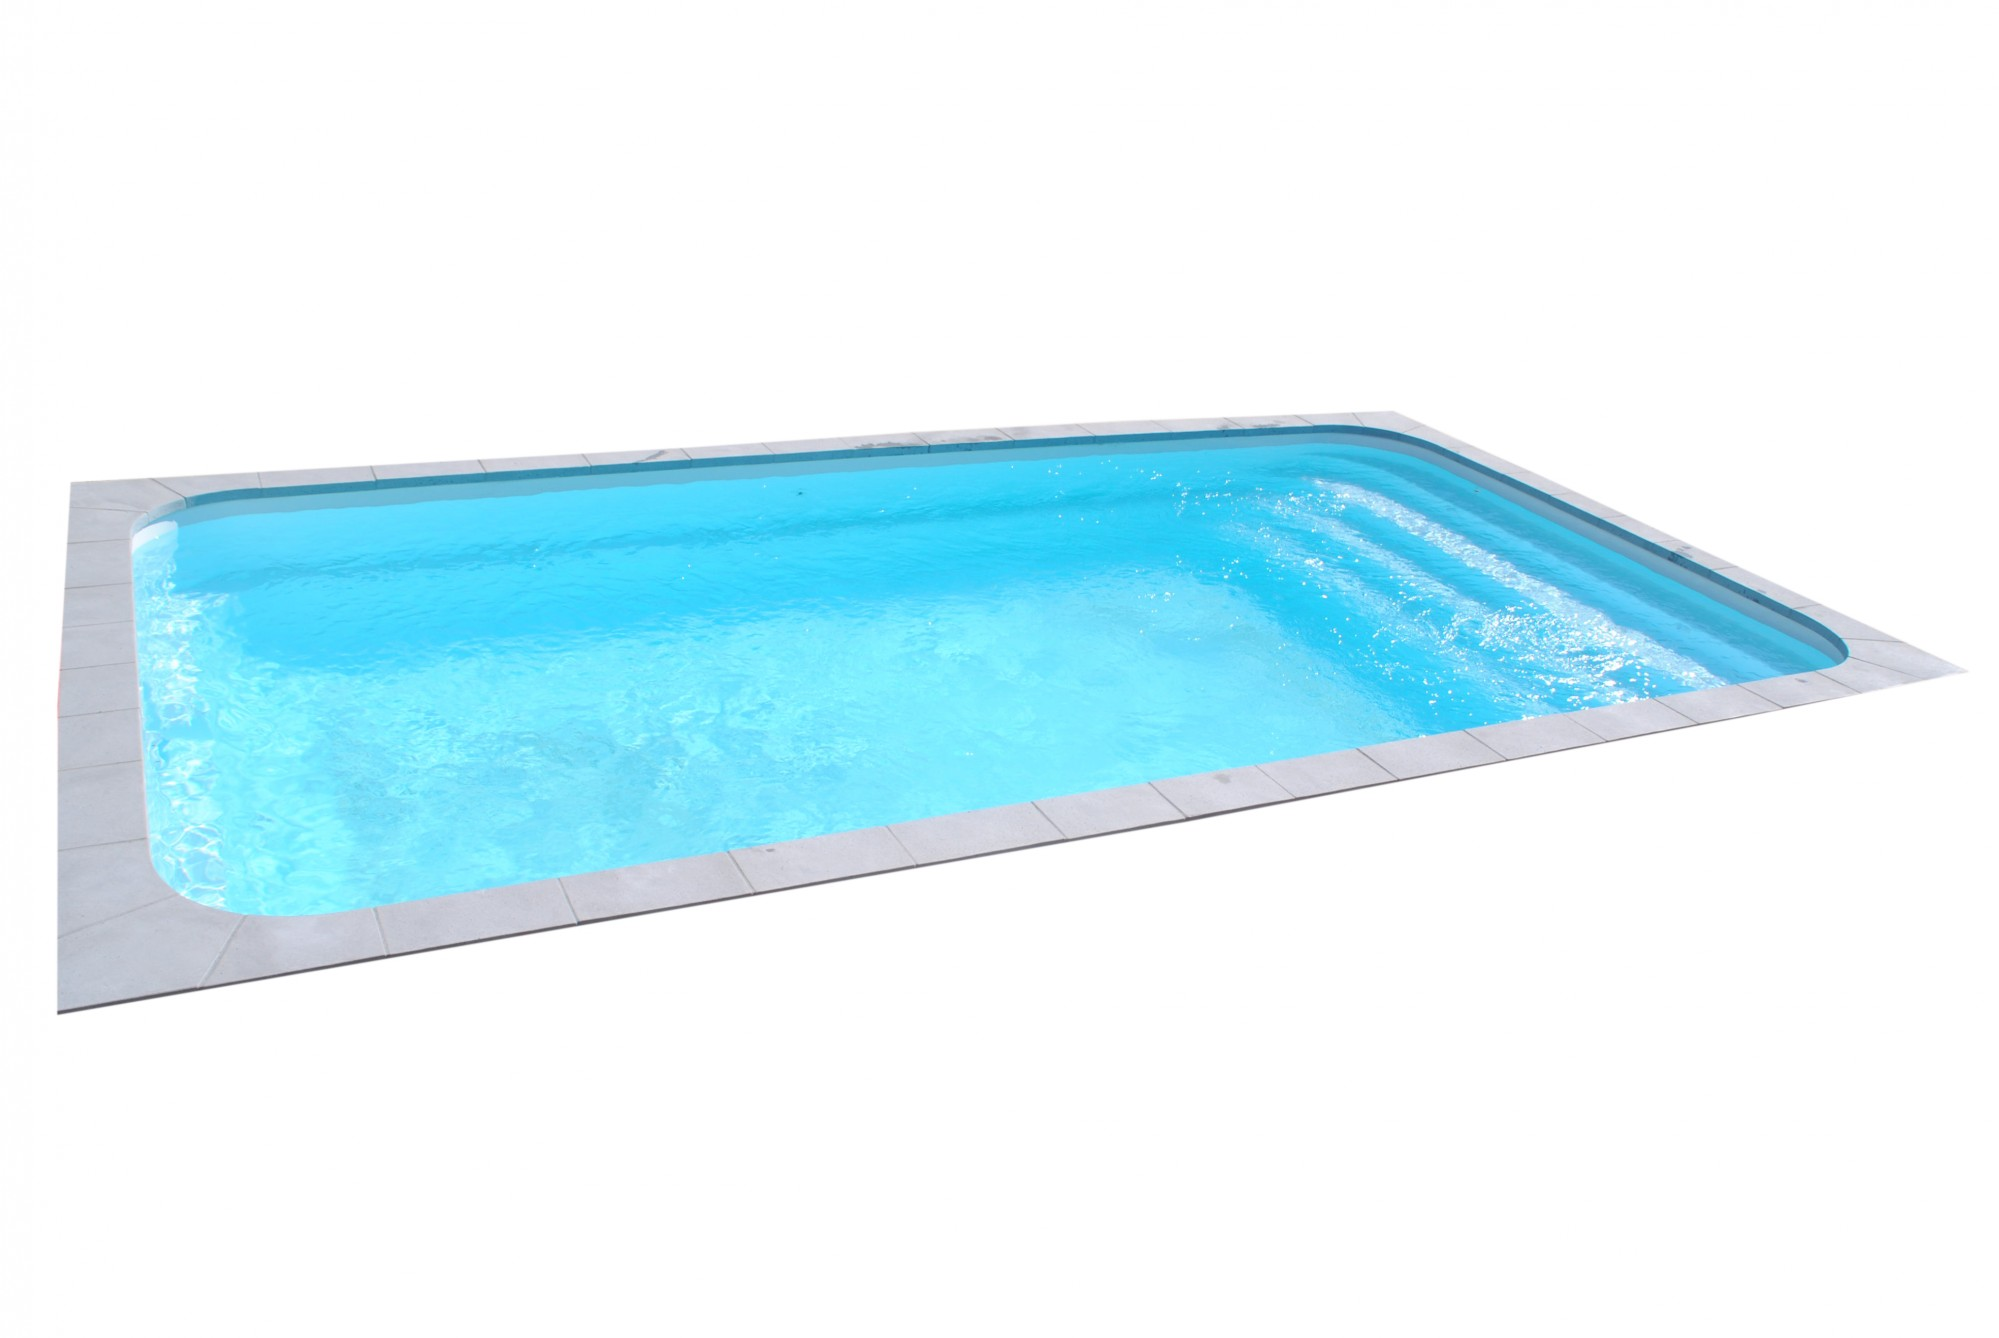 Prix d 39 une piscine coque polyester 8x4 pose comprise for Piscine 8x4